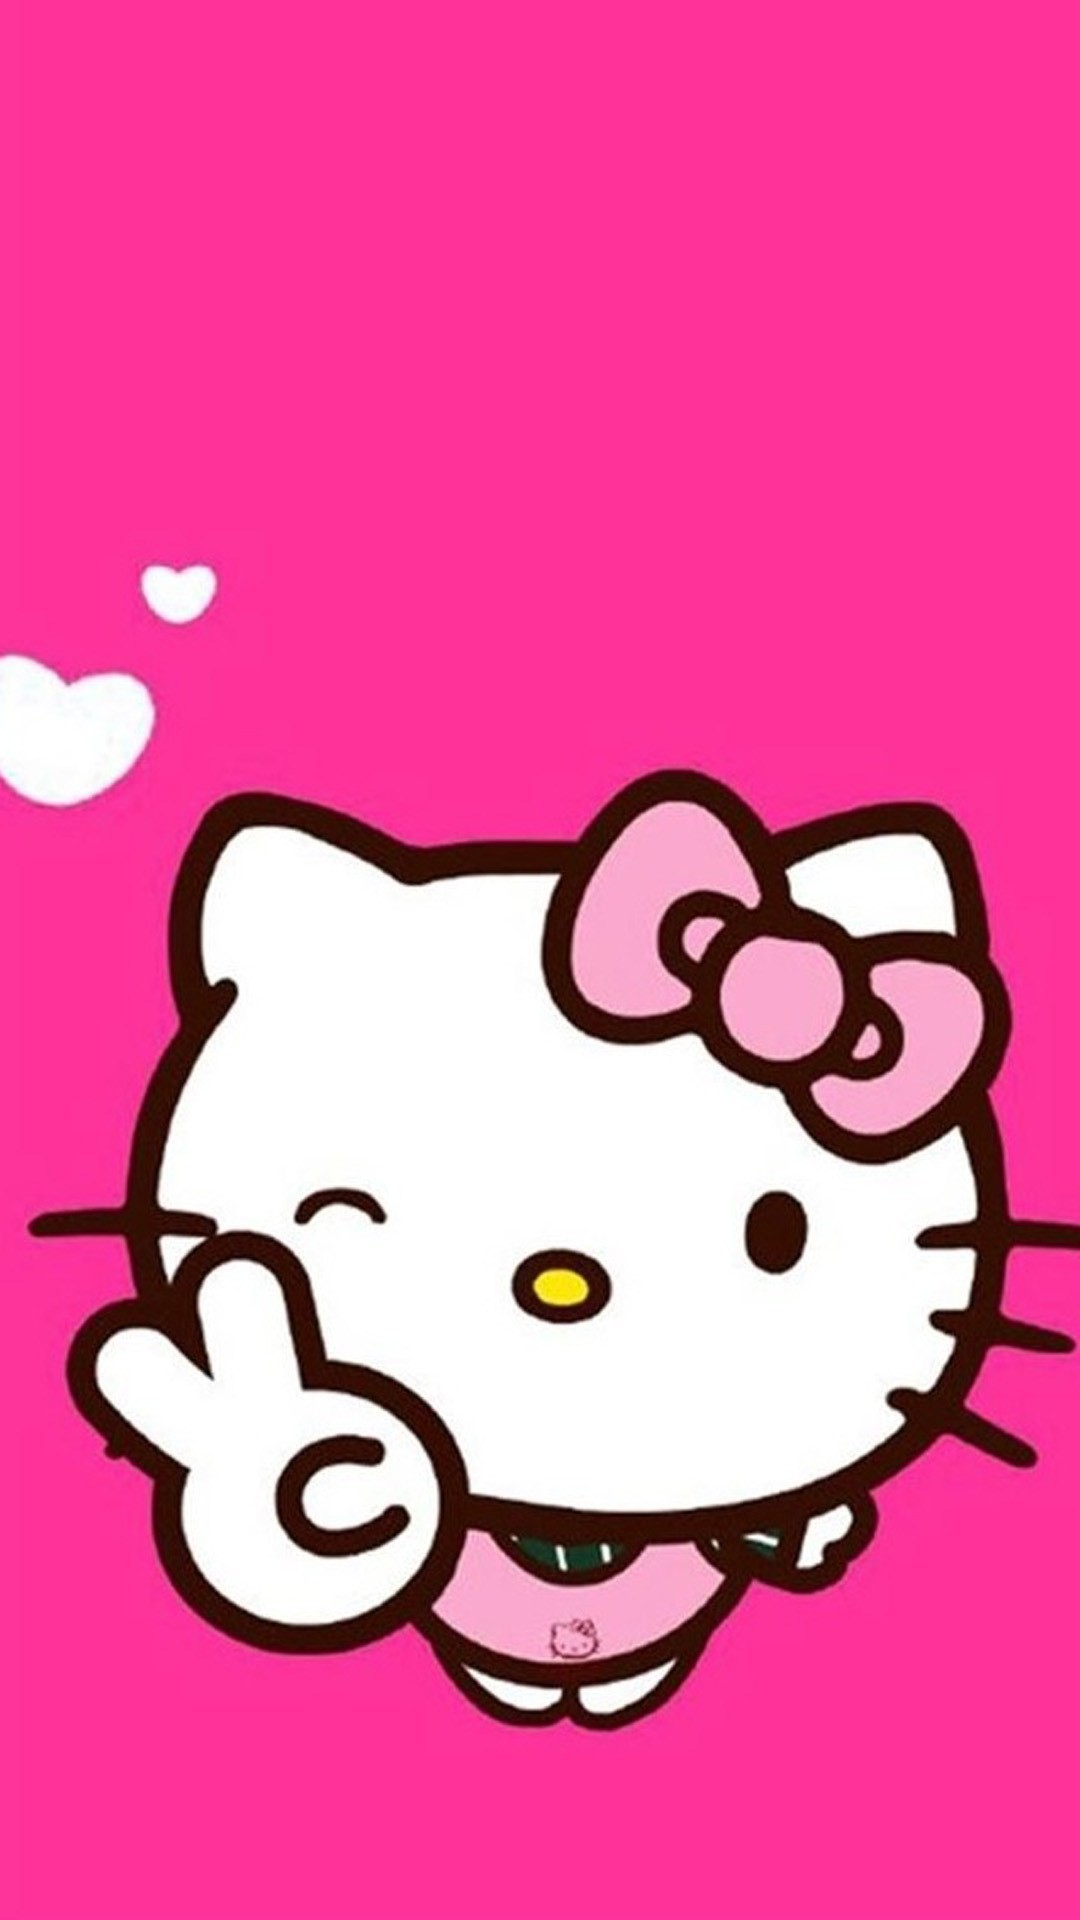 Cute wallpaper for Whatsapp featuring Hello Kitty in pink.